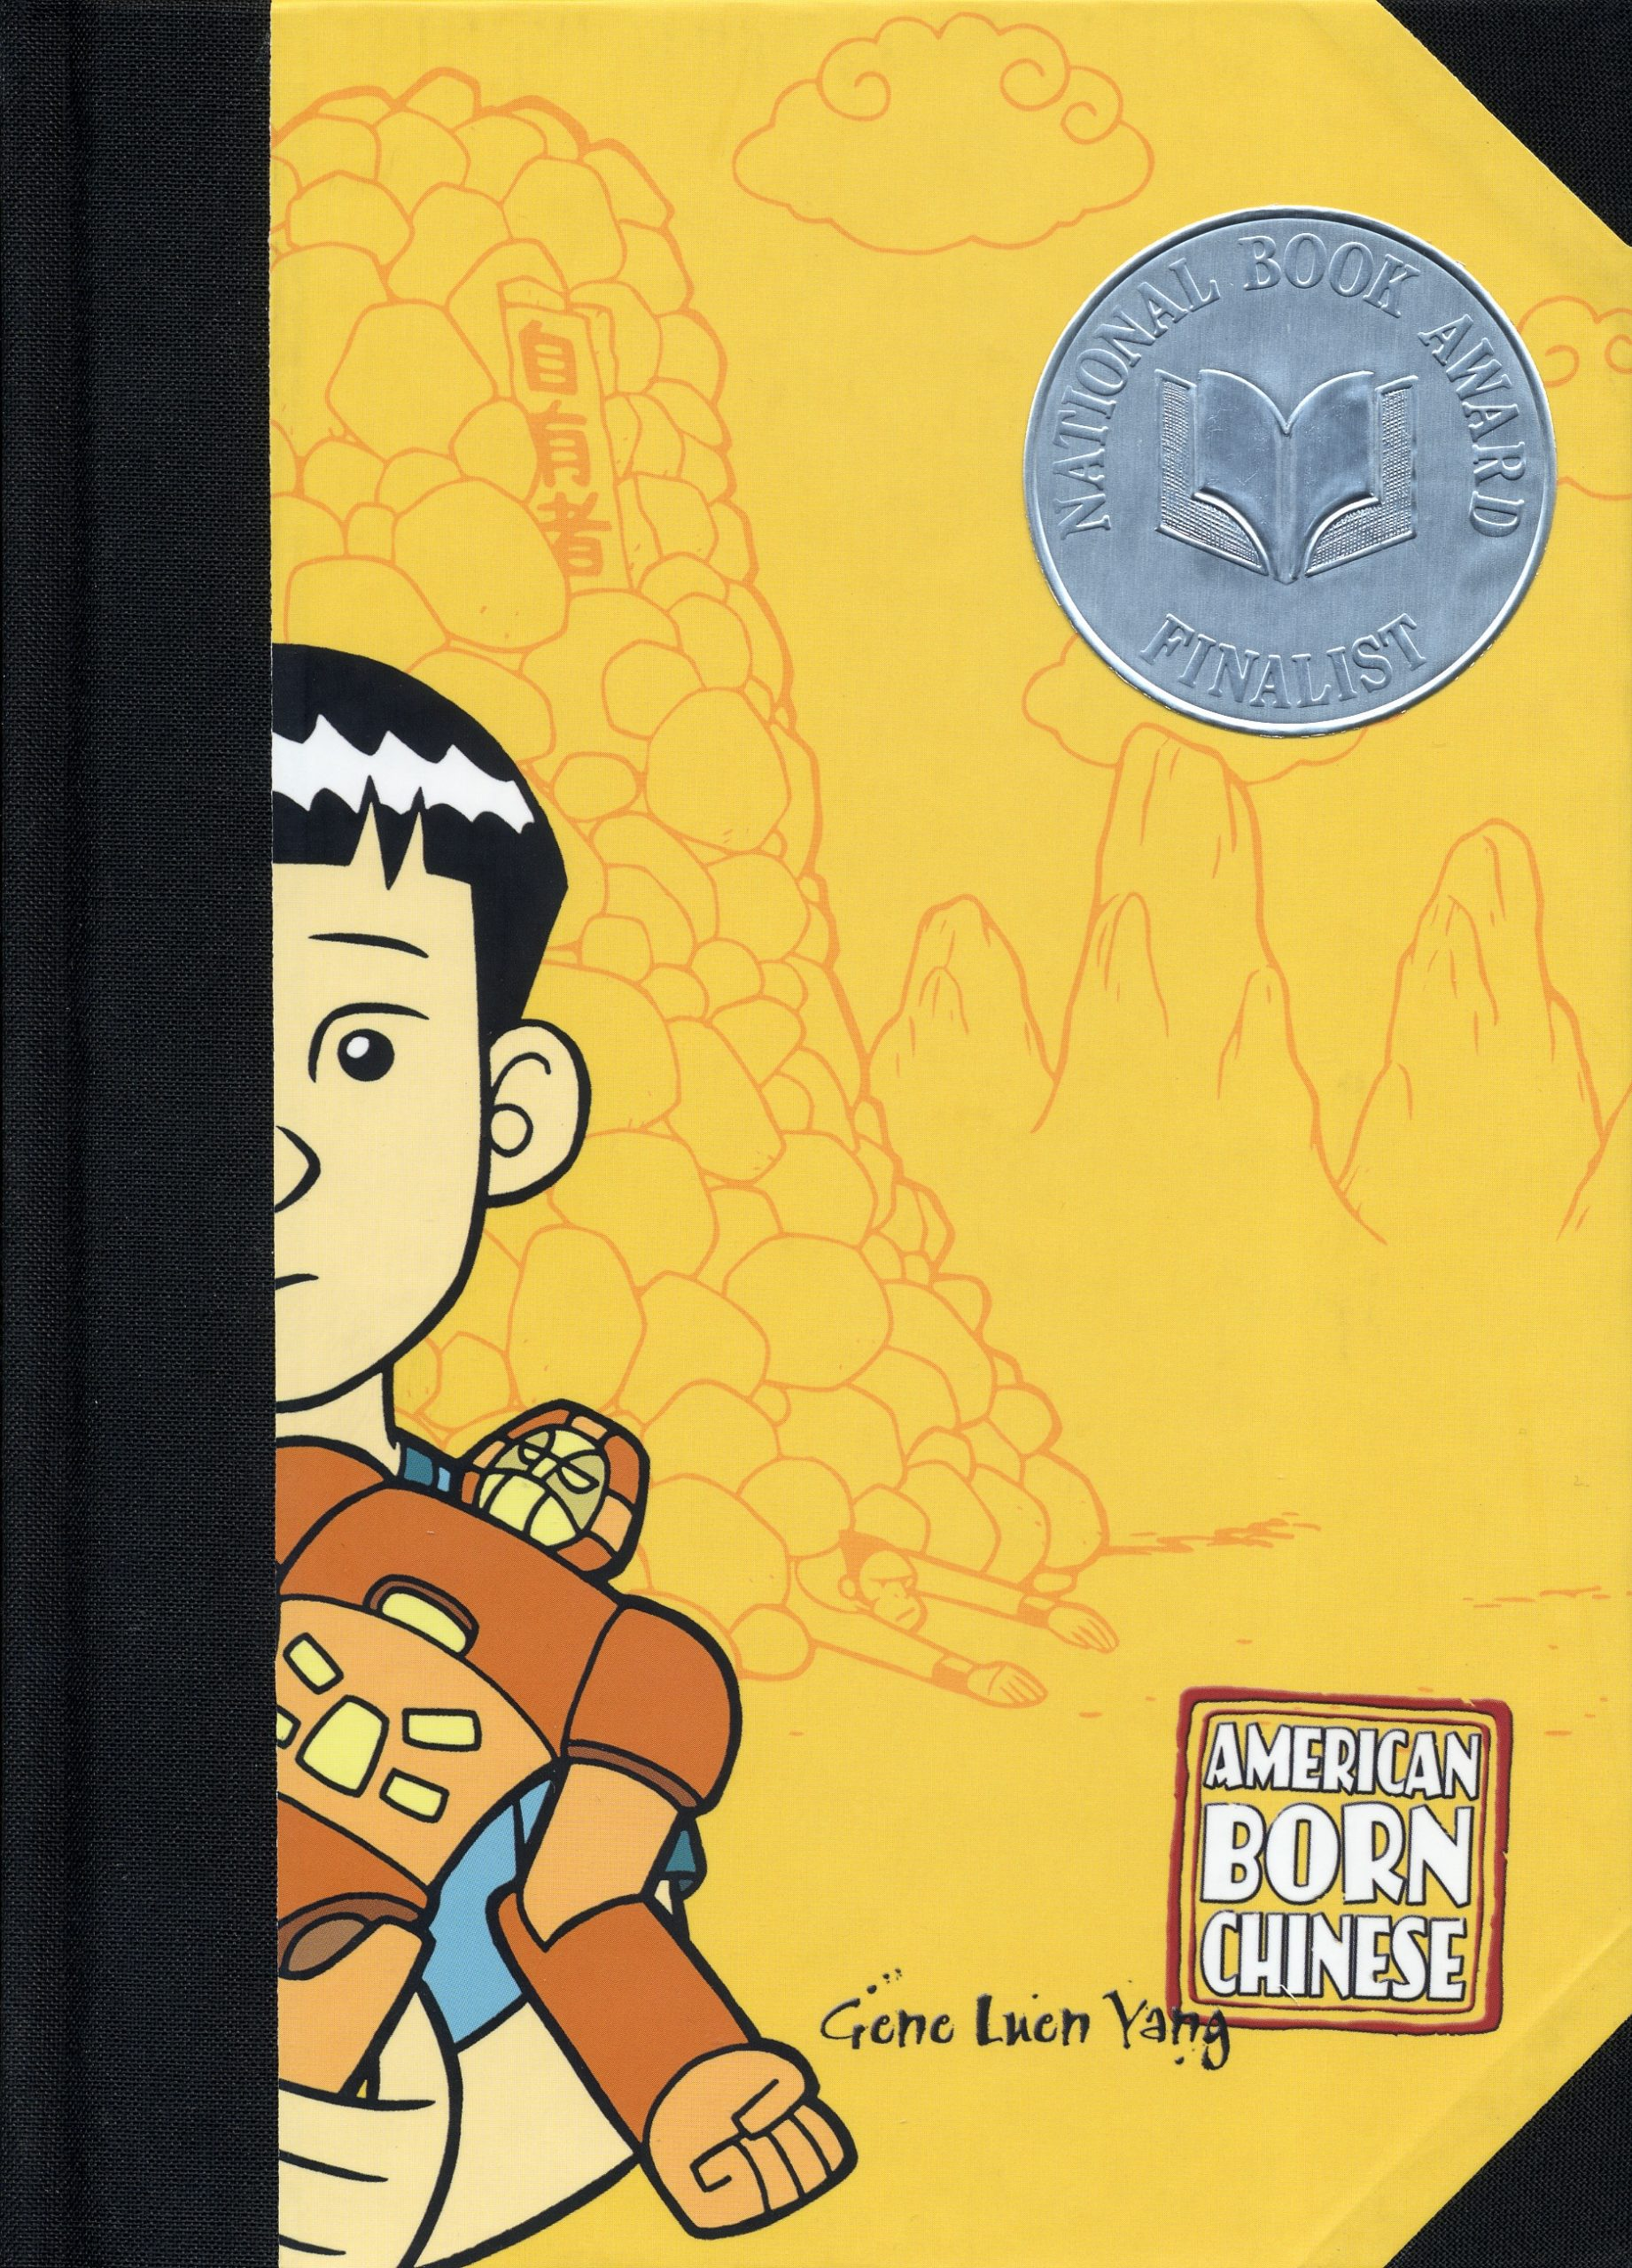 American Born Chinese by Gene Luen Yang book cover, 2006